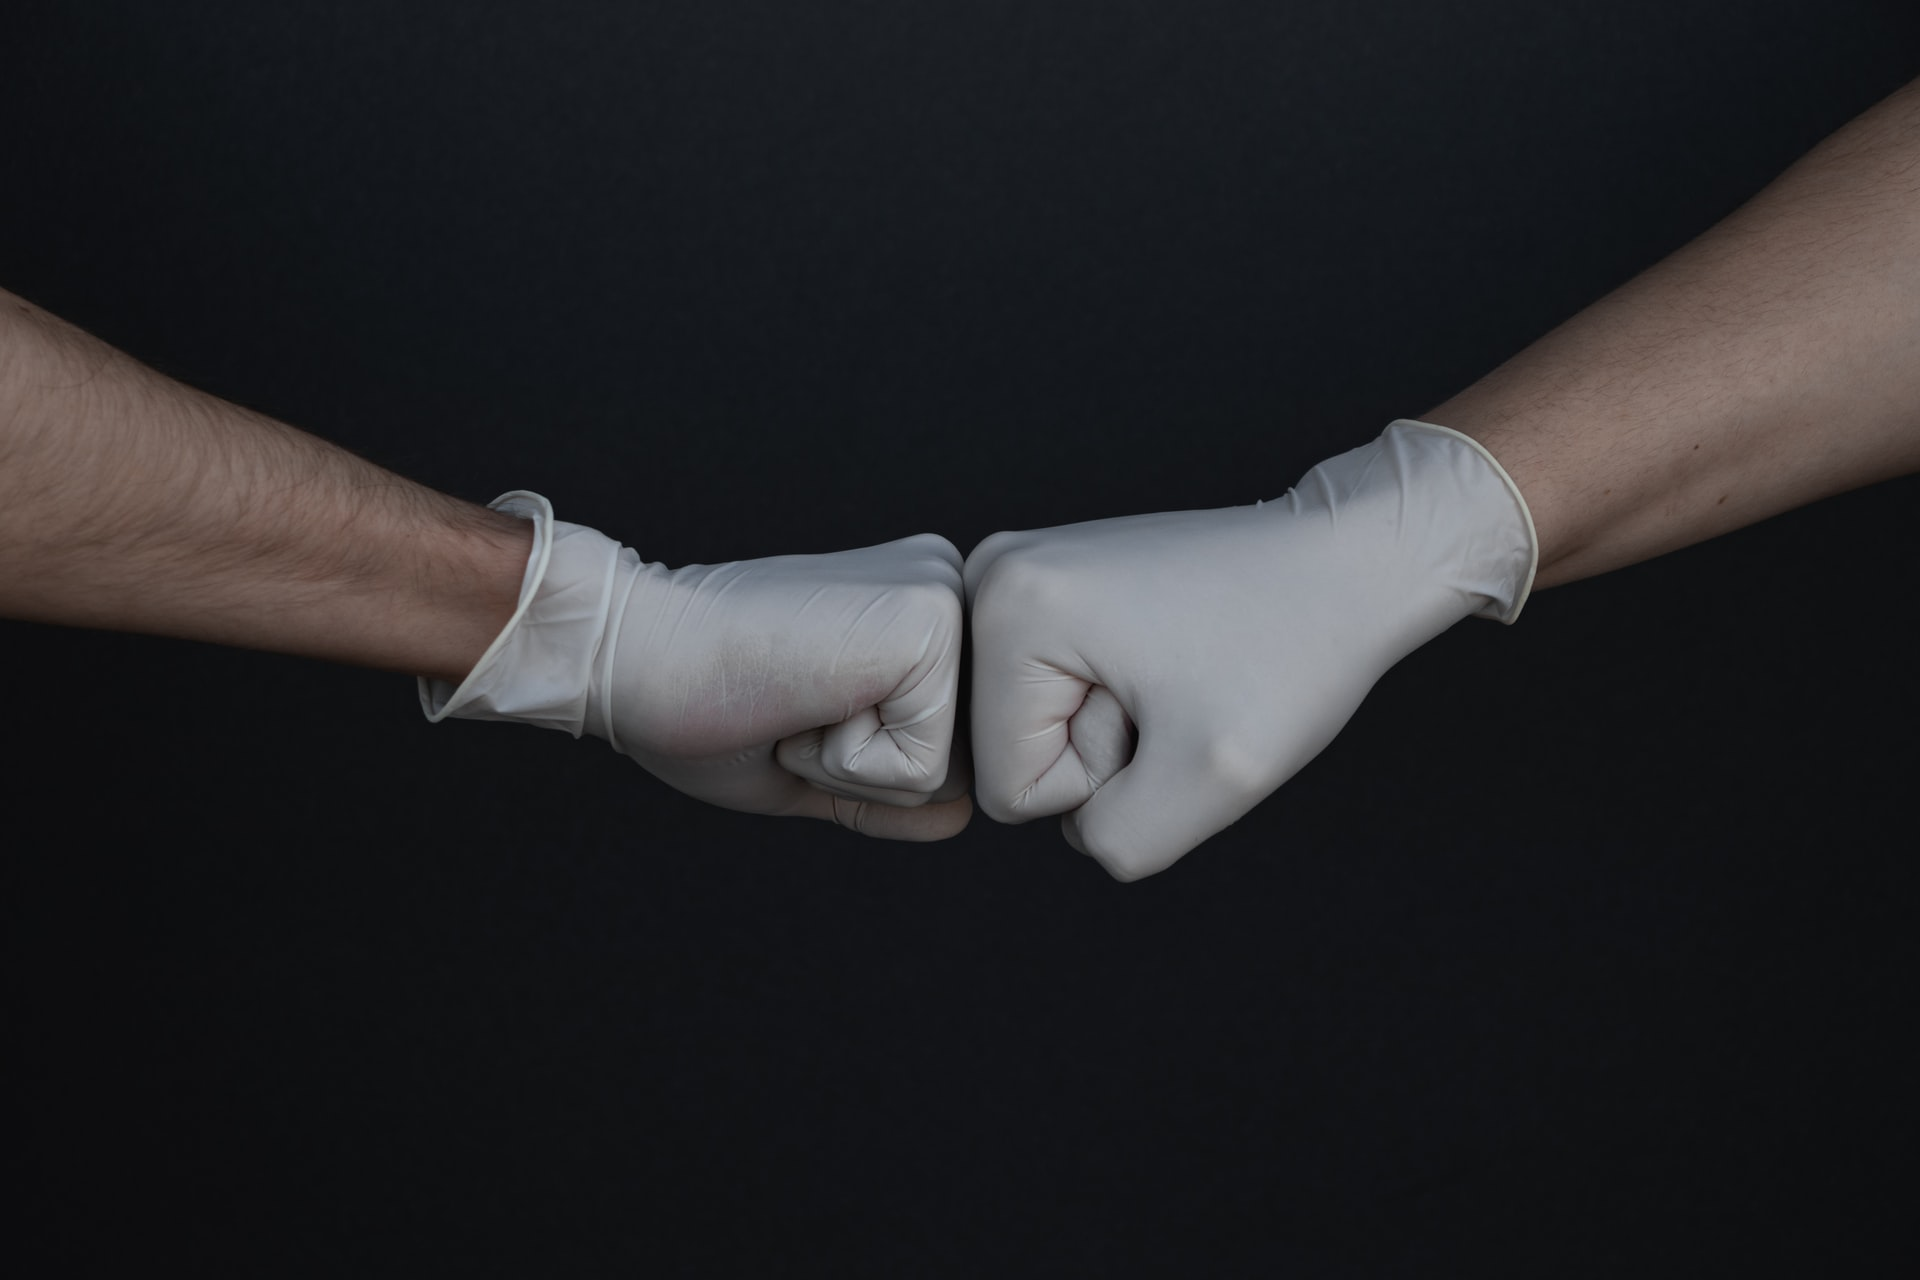 fist bump with protective gloves